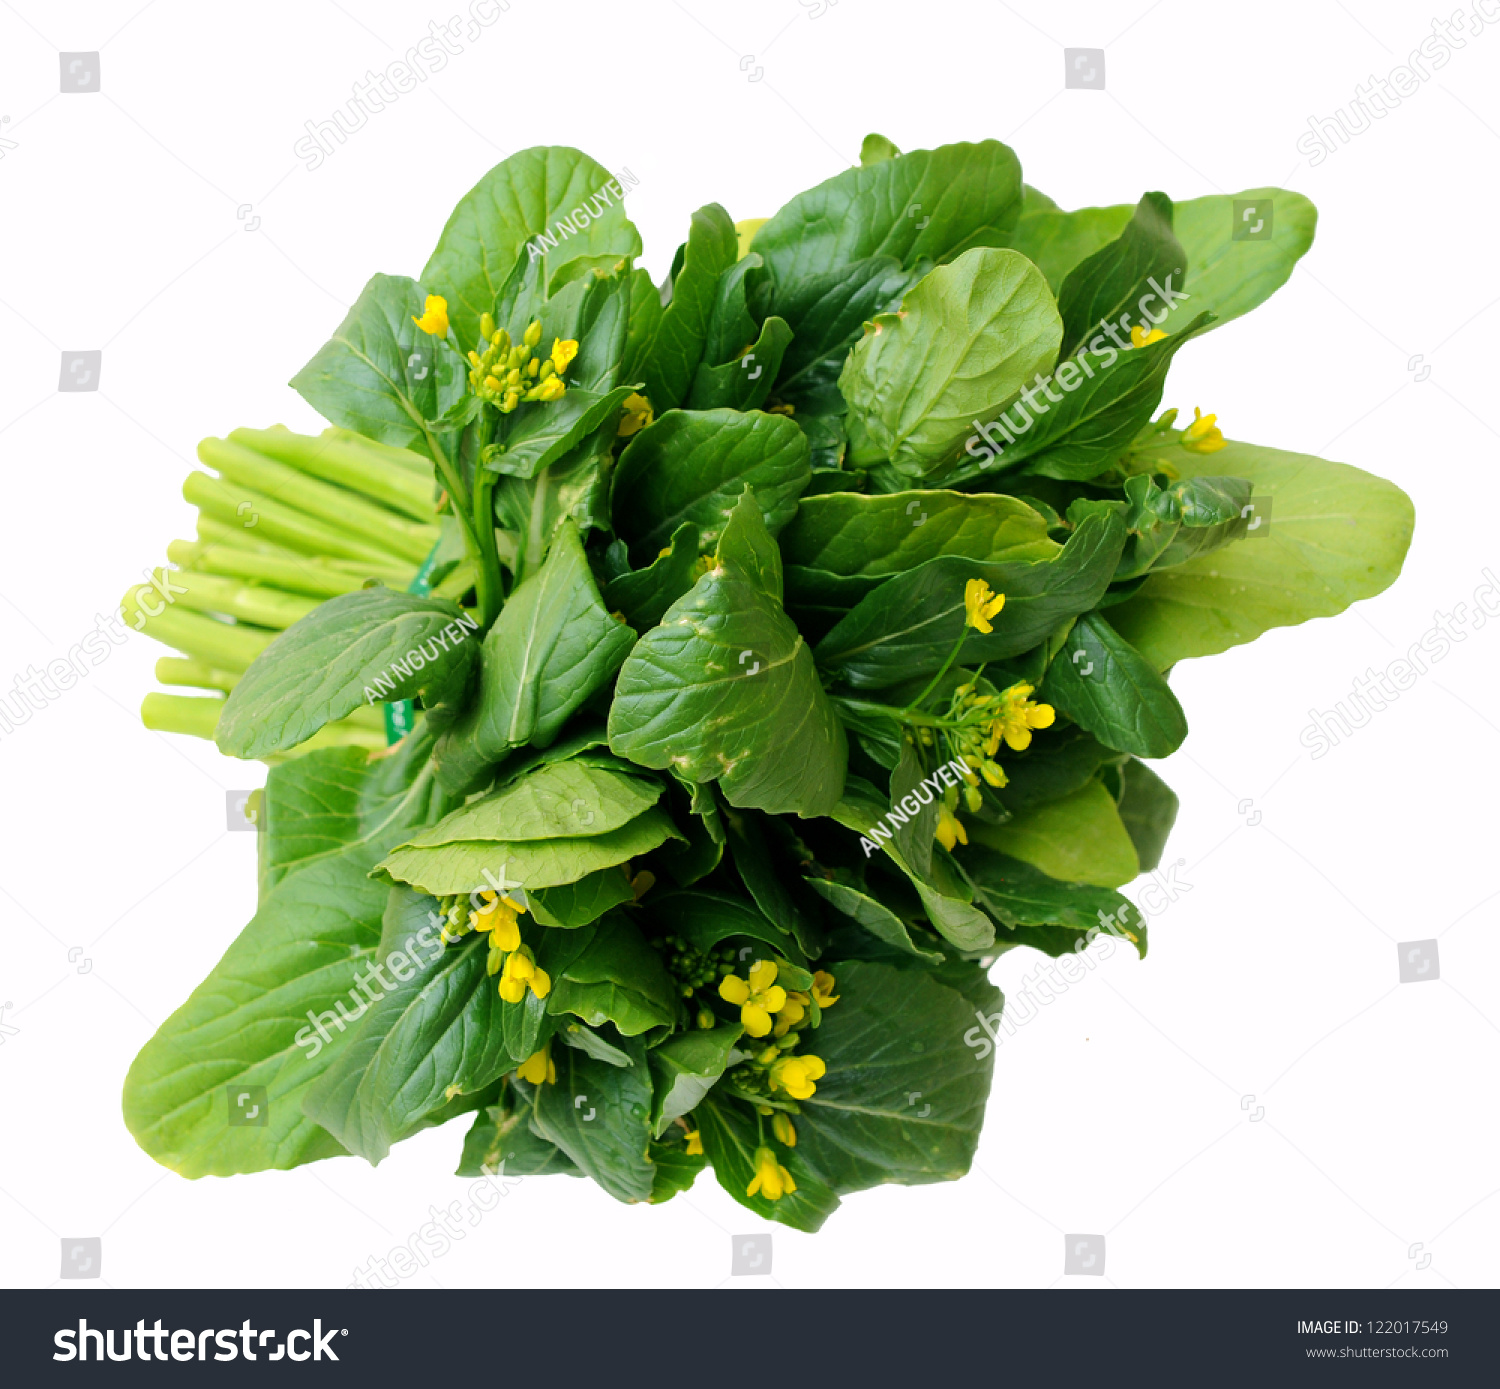 A Bunch Of Chinese Spinach Isolated On White Background Stock Photo 122017549 : Shutterstock